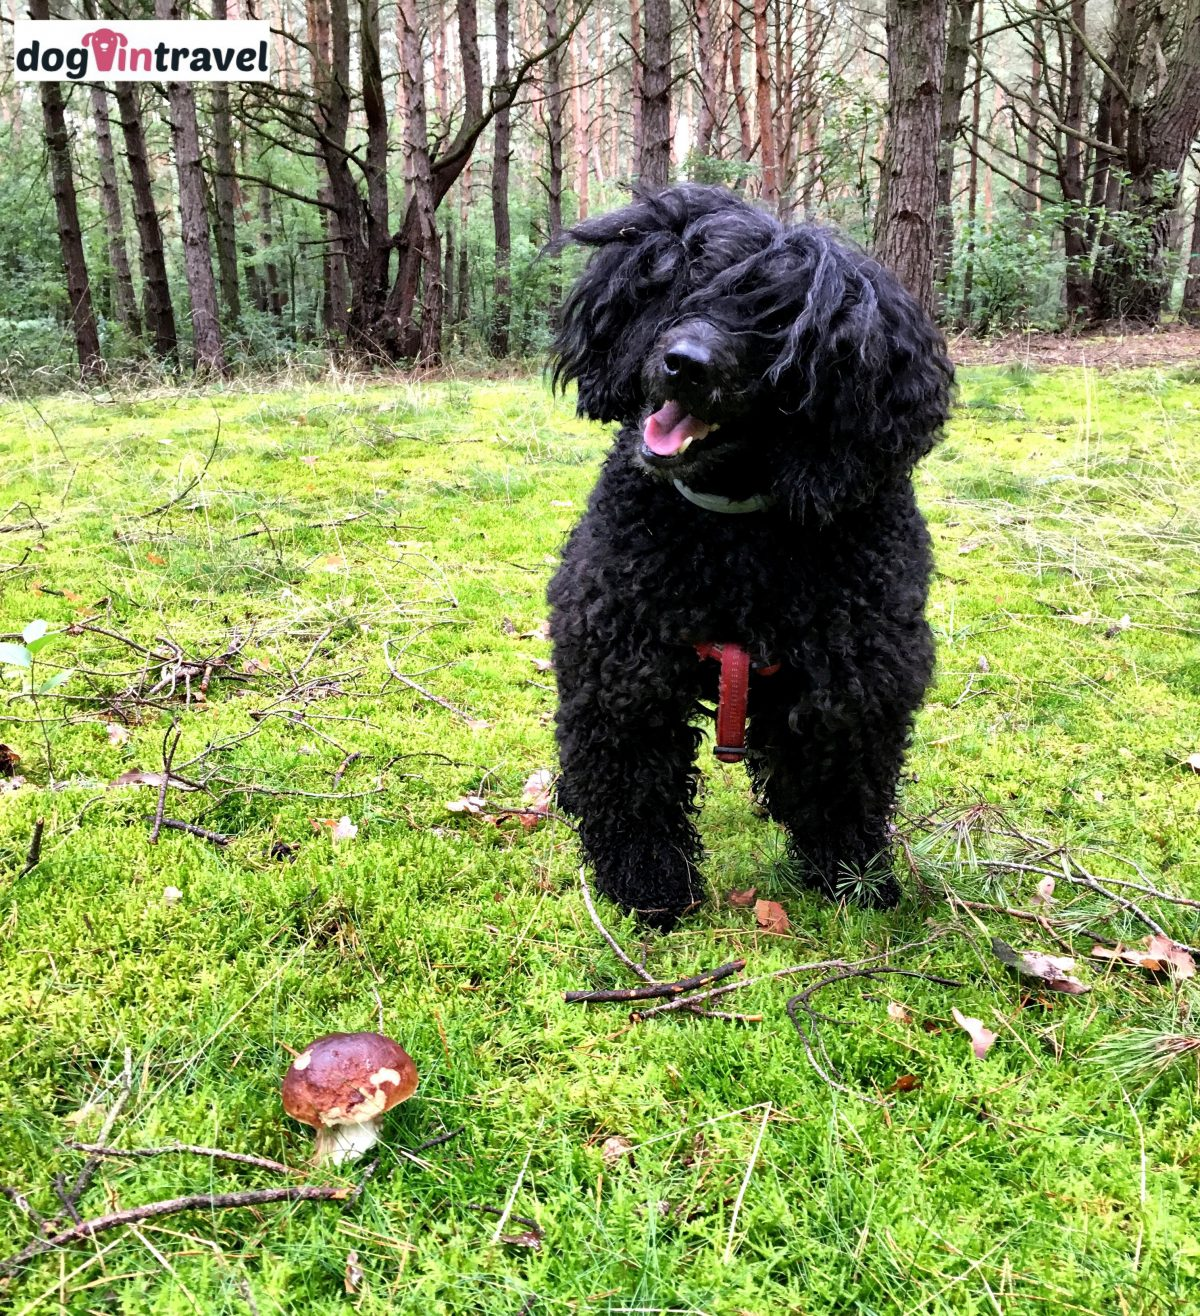 Mr Dog in search for mushrooms?